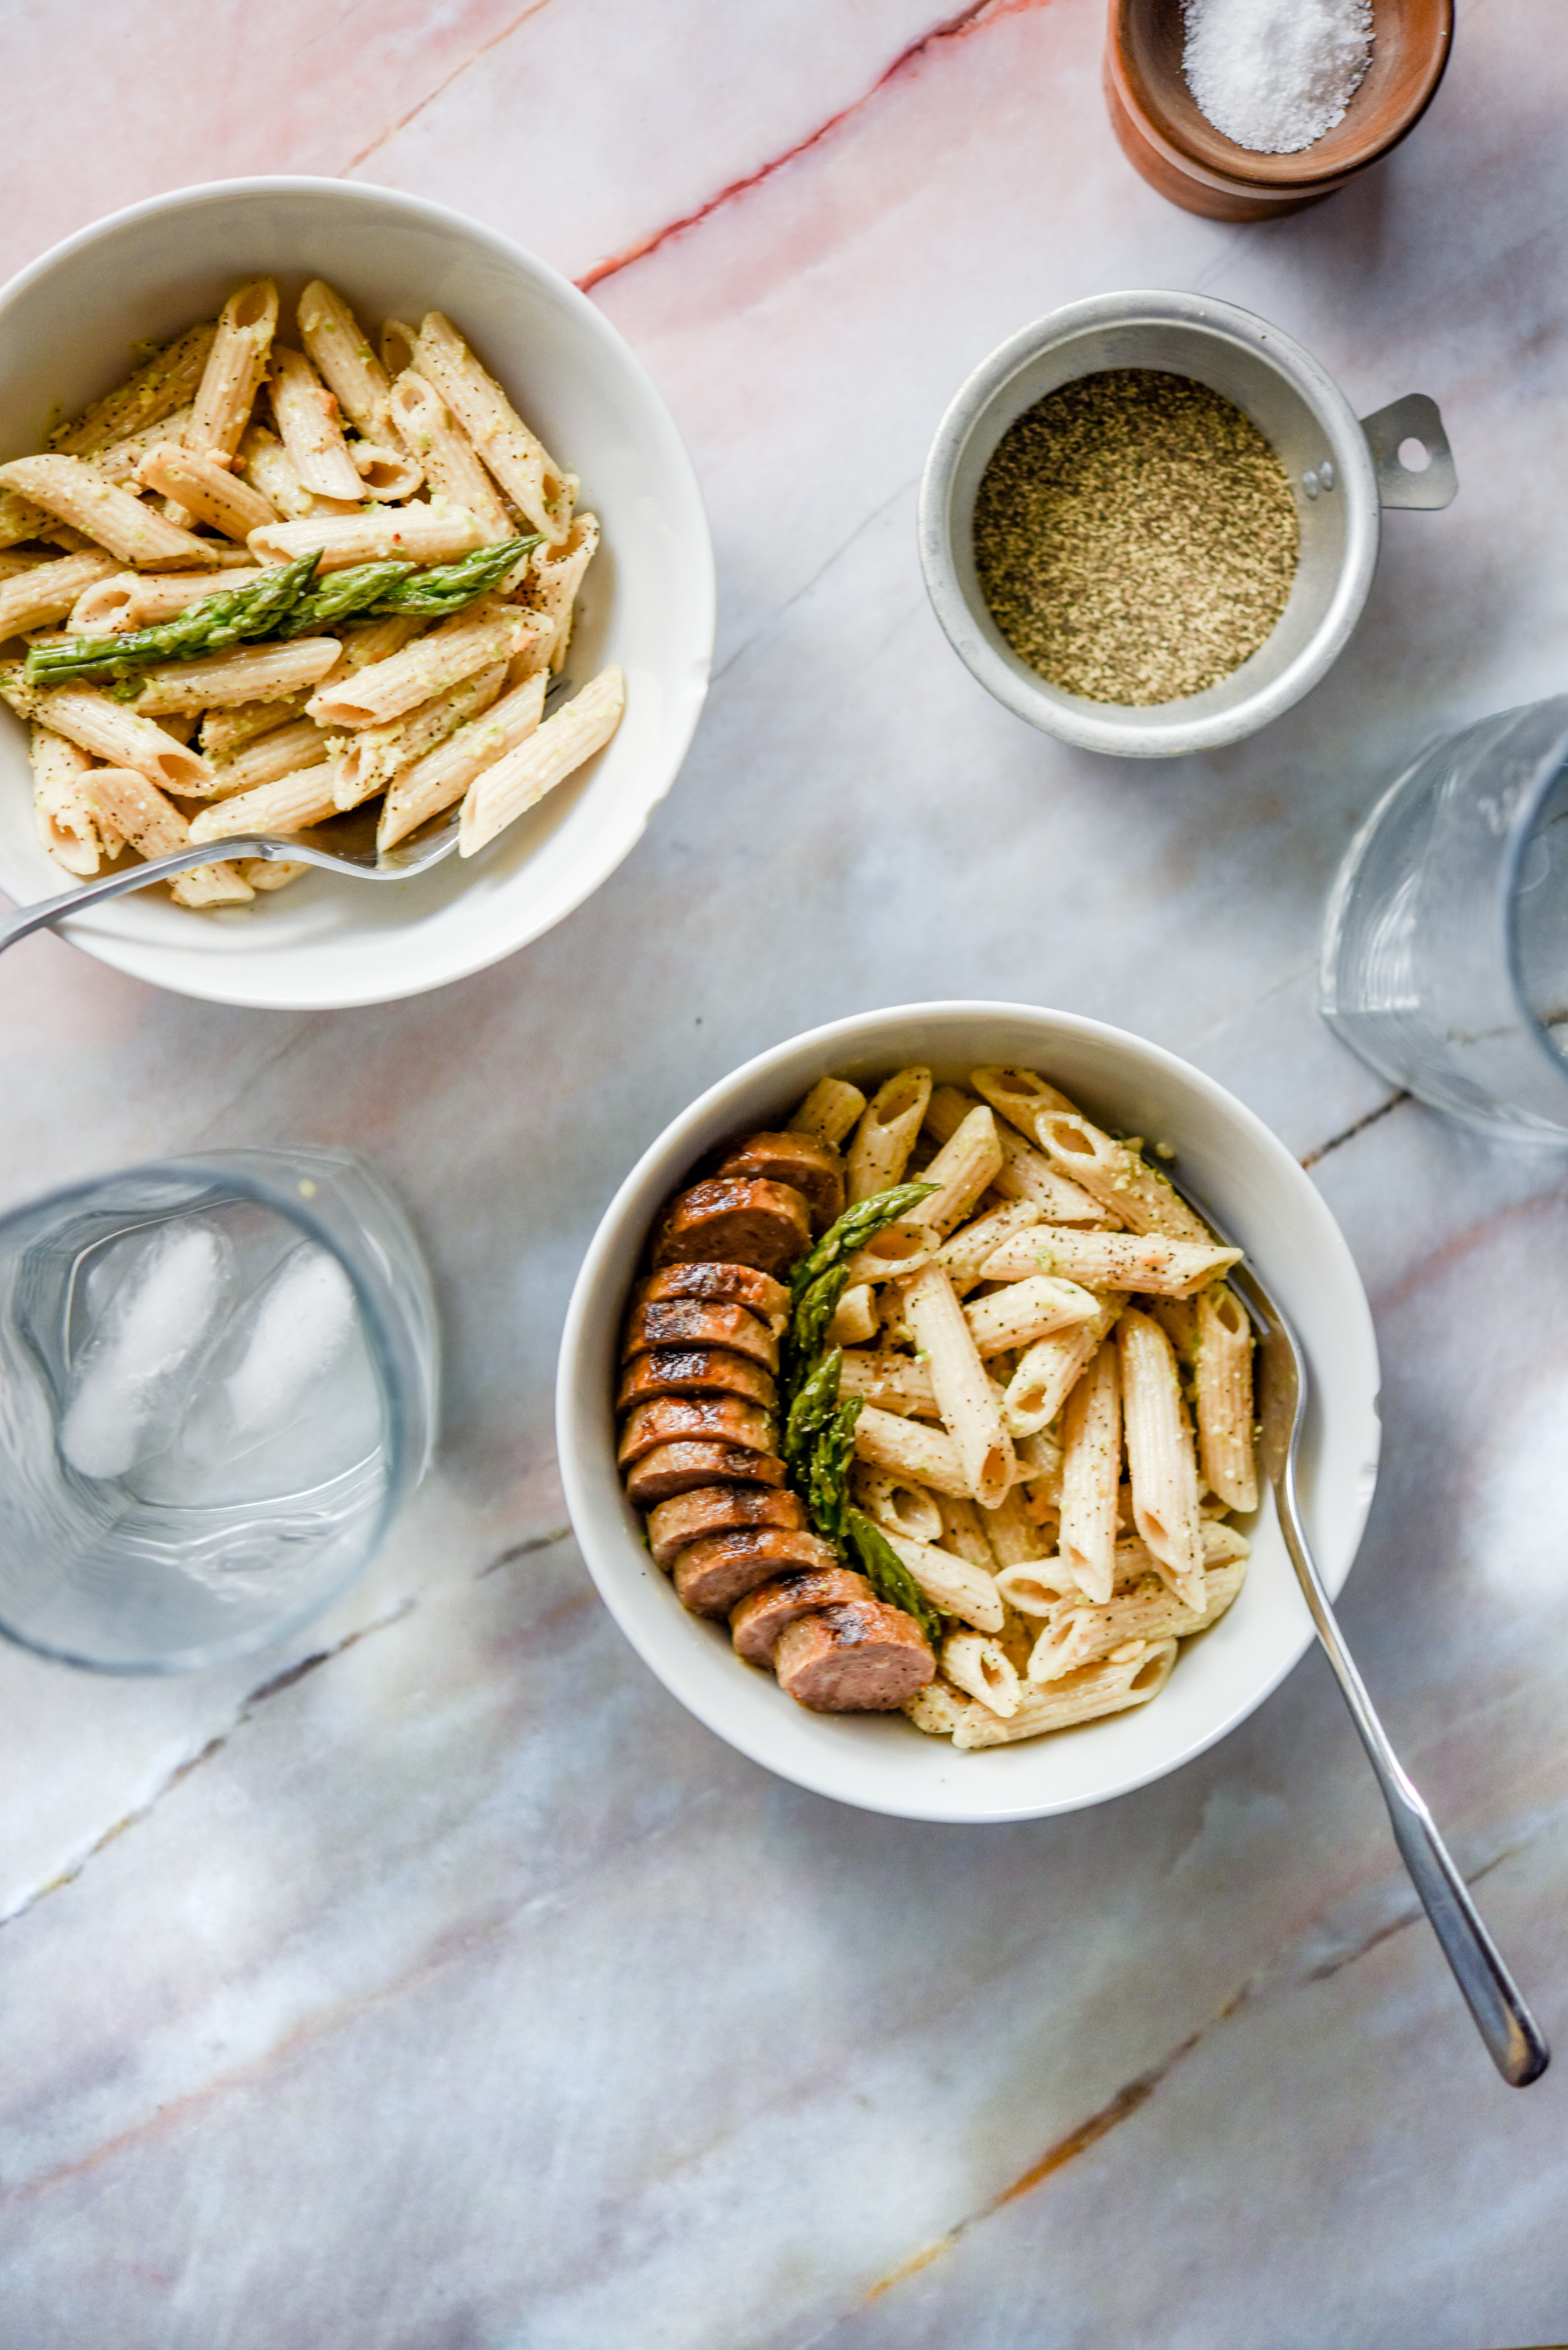 asparagus-pesto-penne-pasta-with-sausage-marble-background-Raleigh-food-photographer.jpg